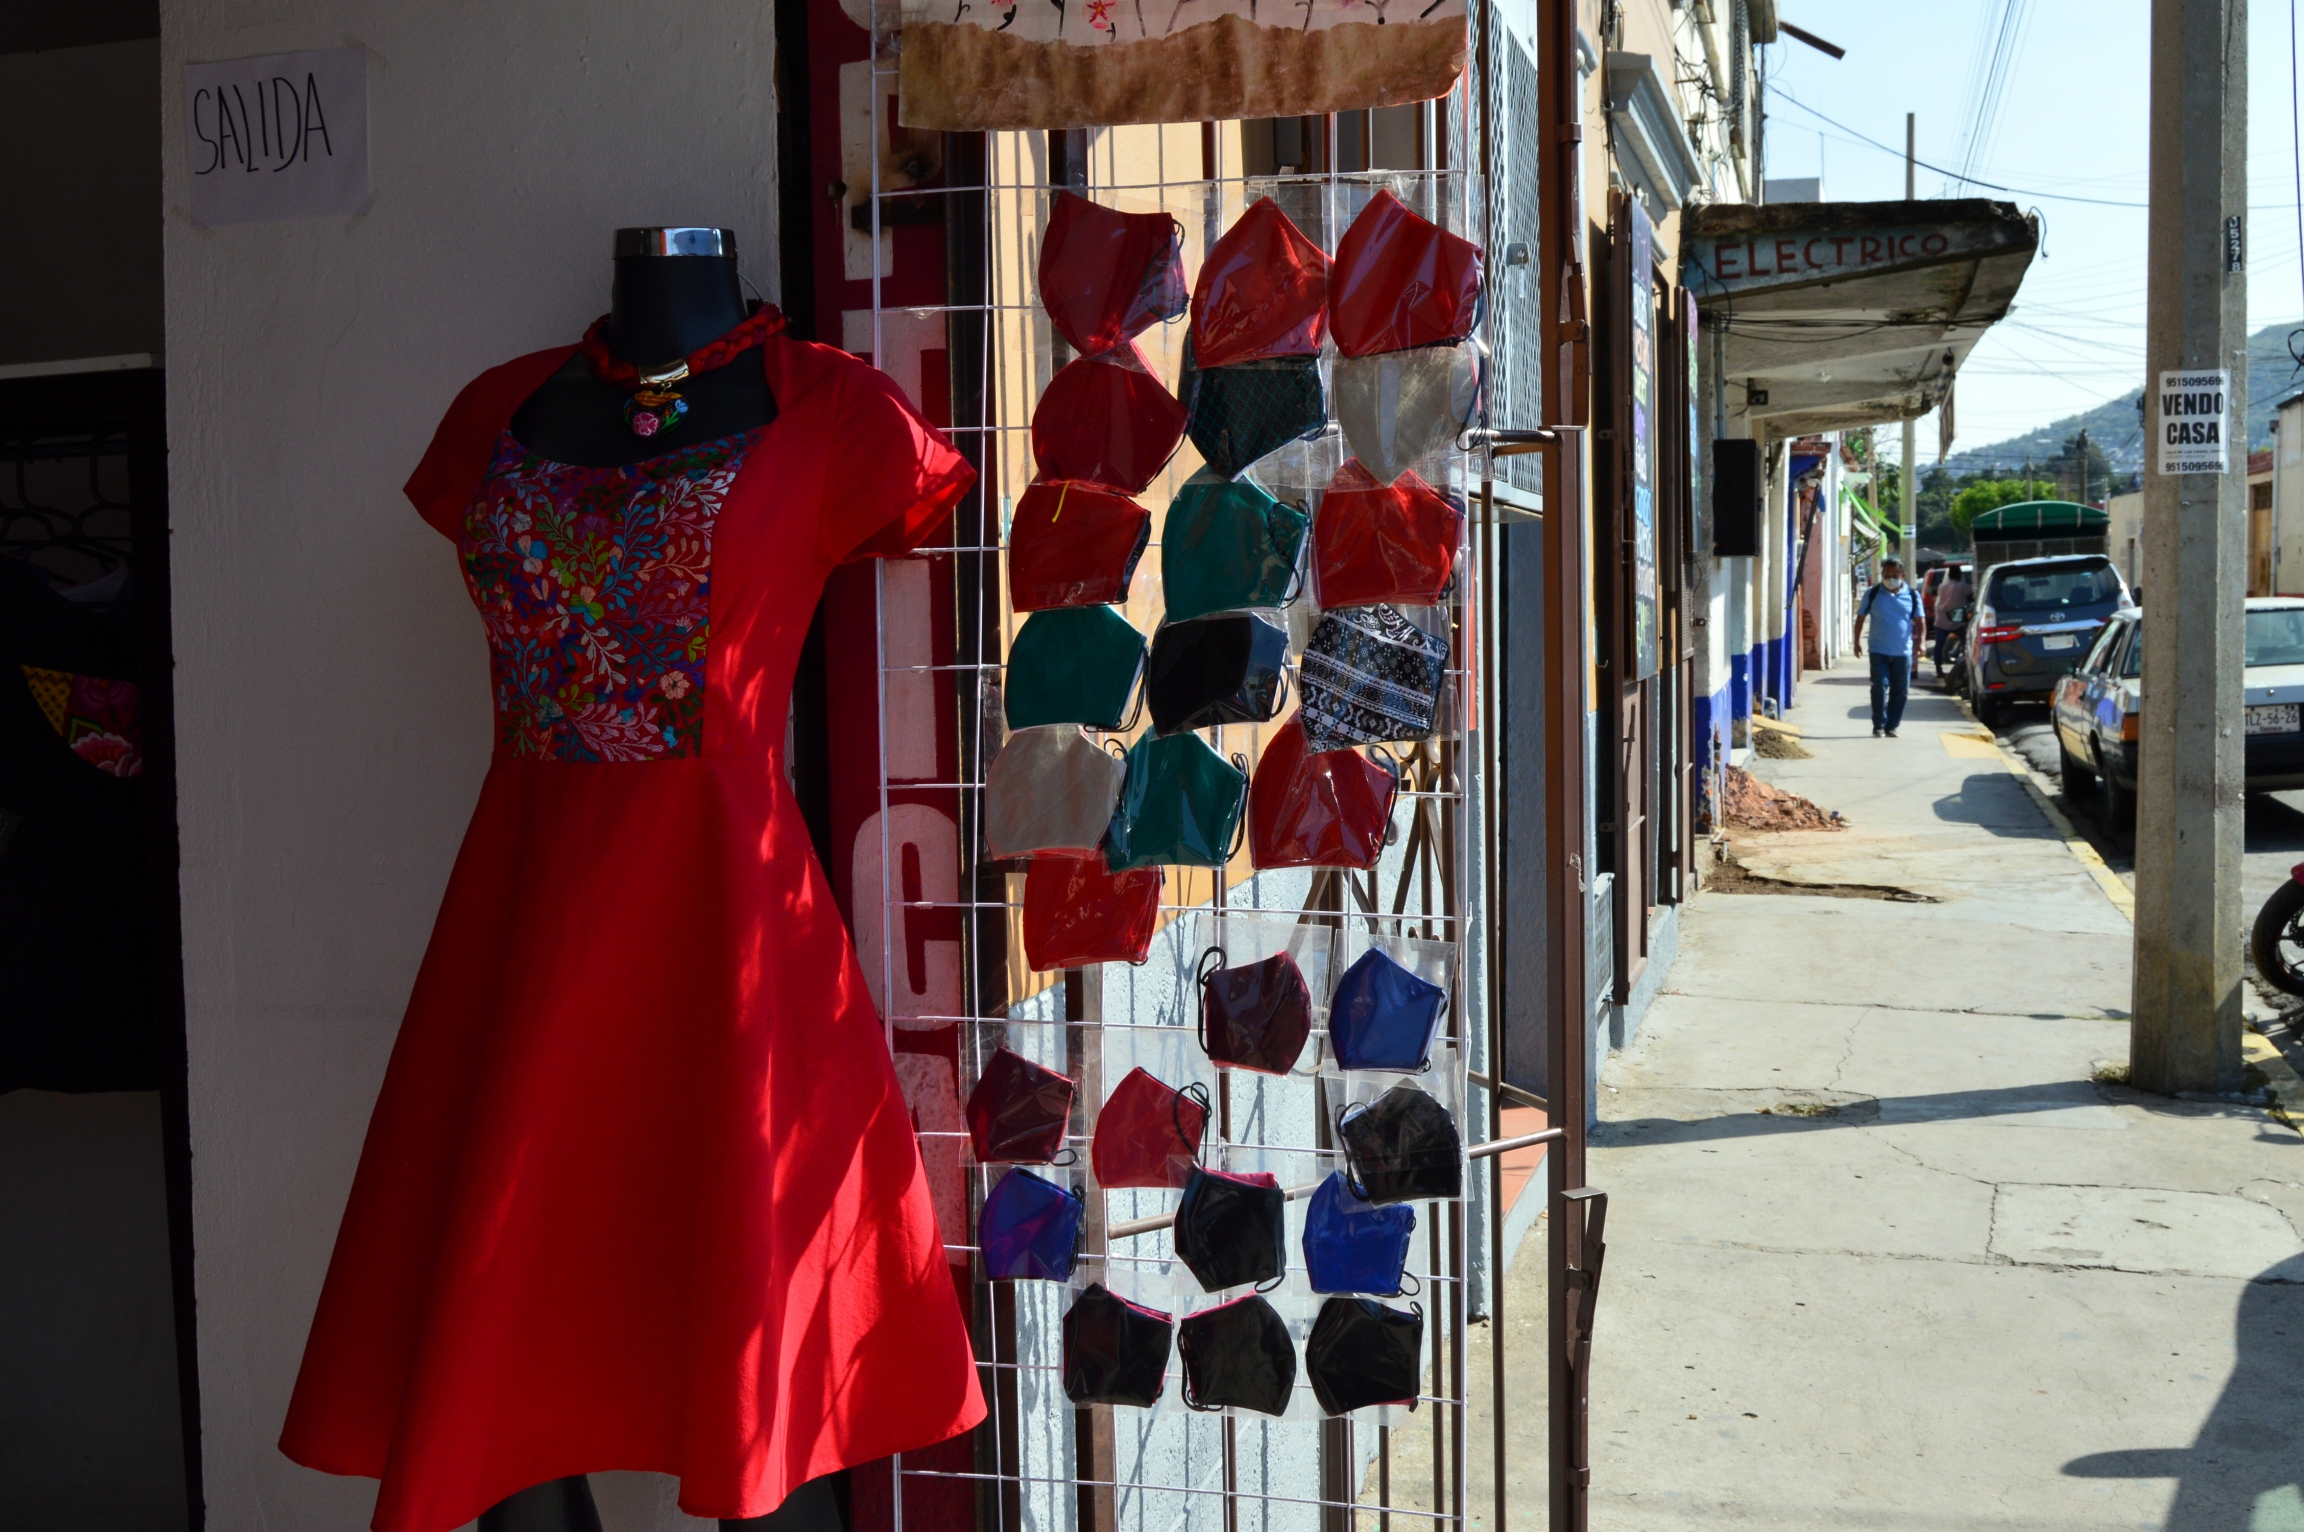 Many shops in Mexico have shifted to face mask production to stay afloat during the pandemic.